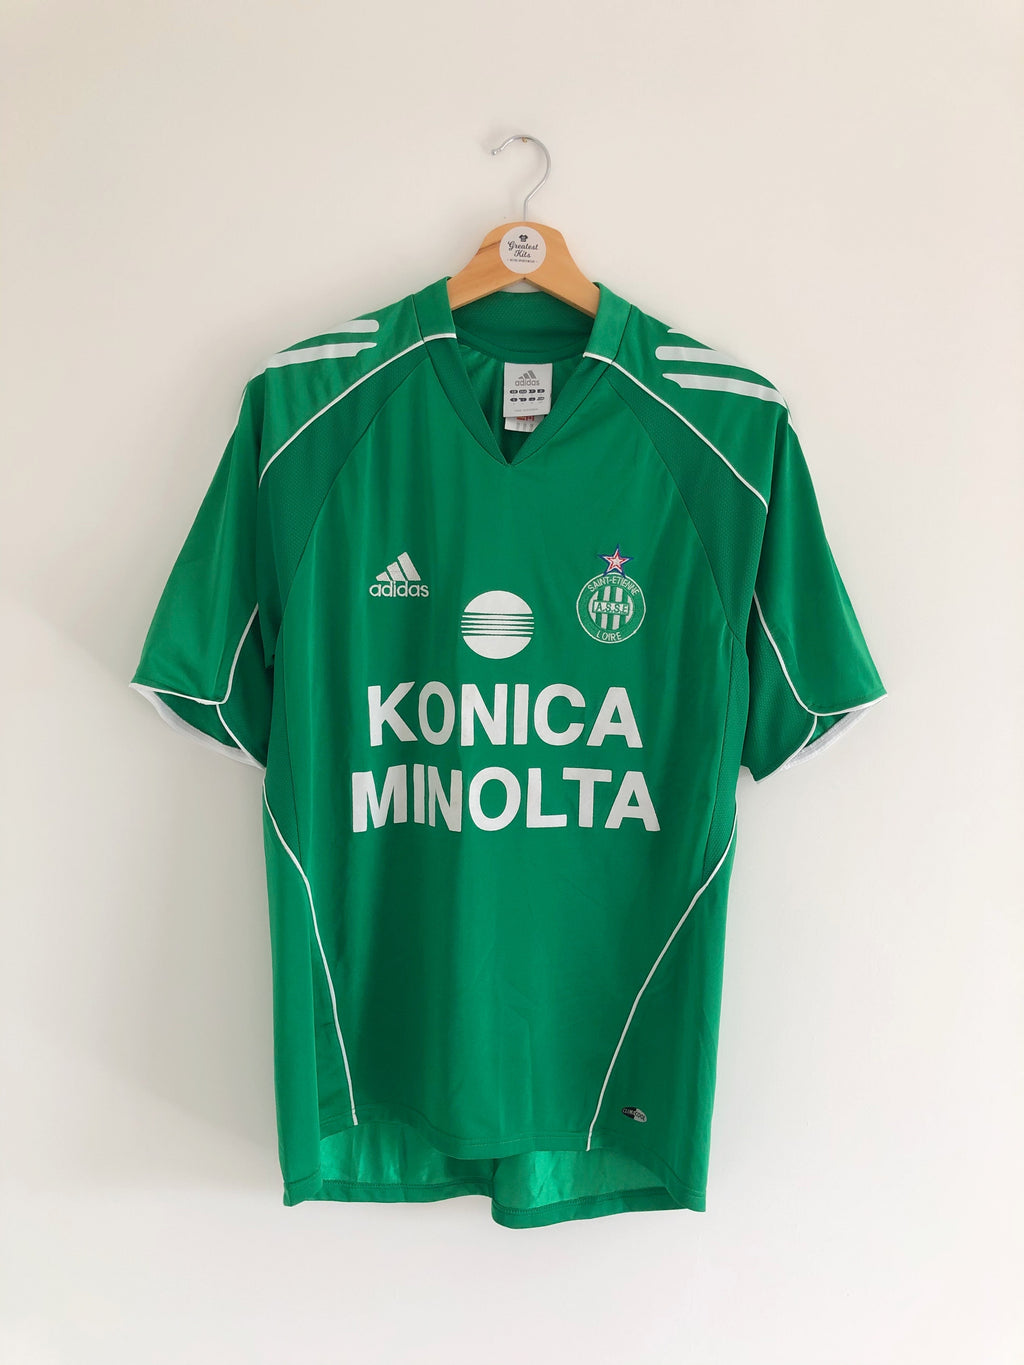 2005/06 Saint Etienne Home Shirt (S) 9/10